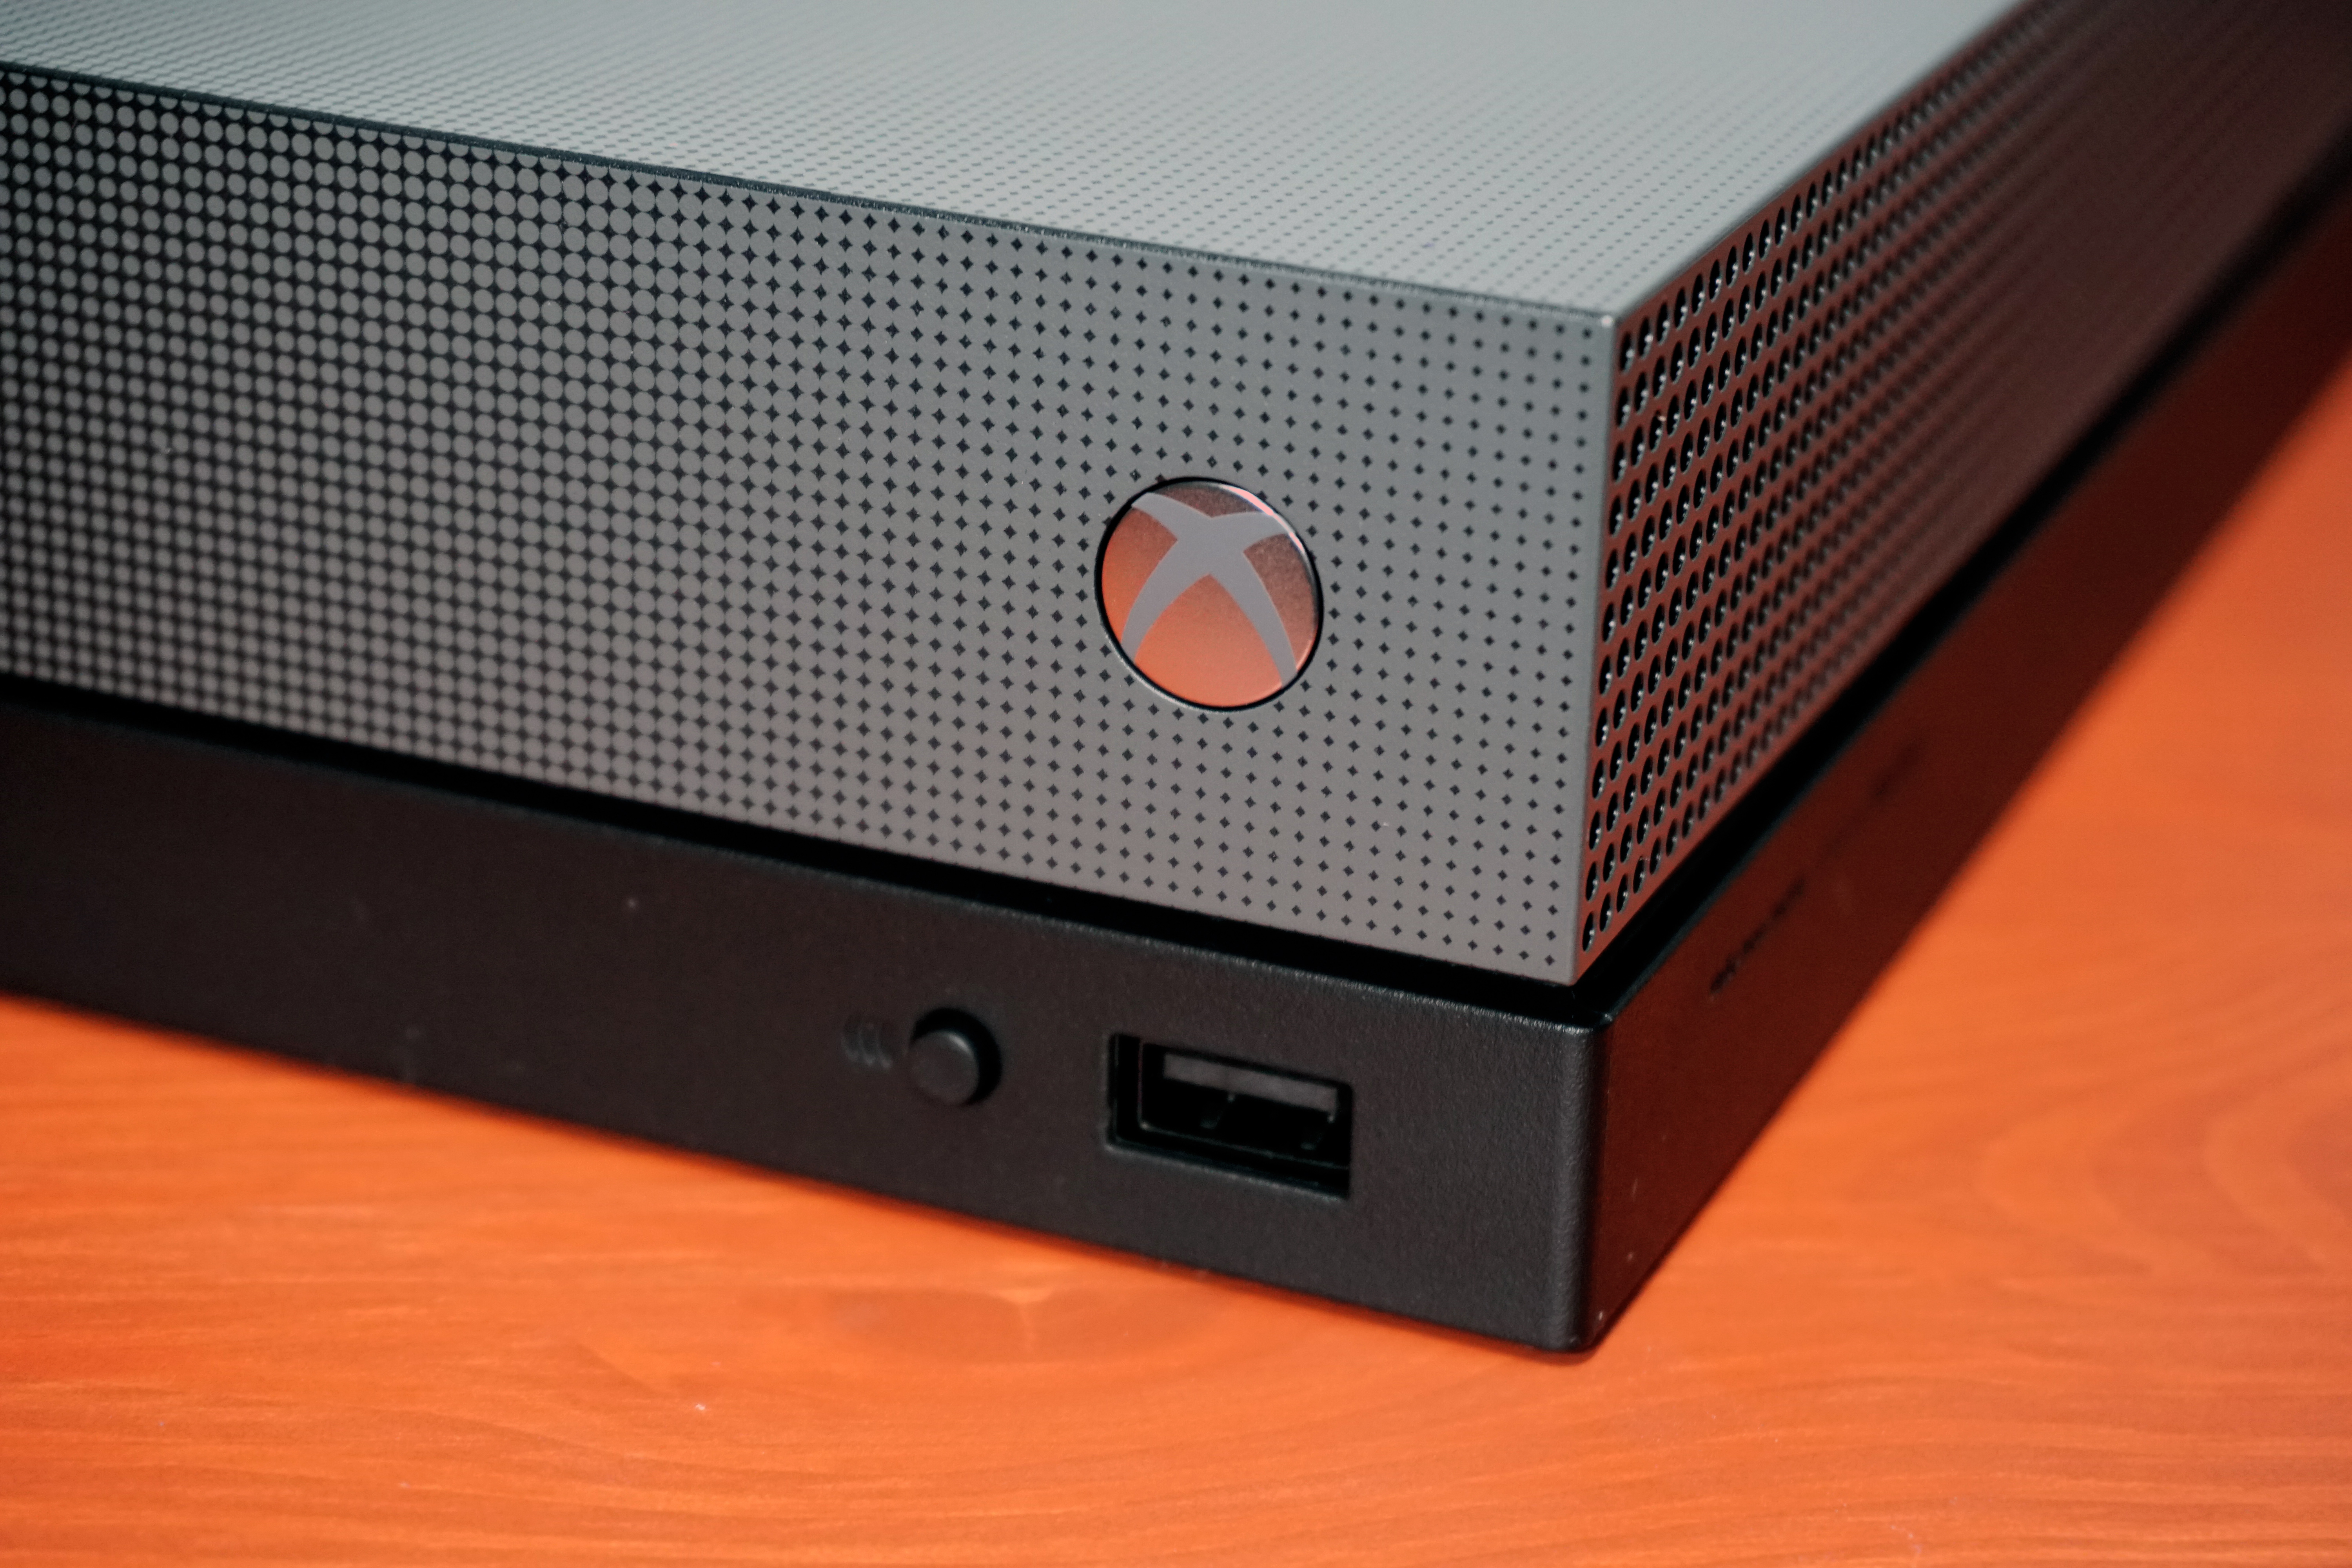 xbox one problems and how to fix themXbox 360 Automatically Resets With Hdmi Switches Page 7 #4